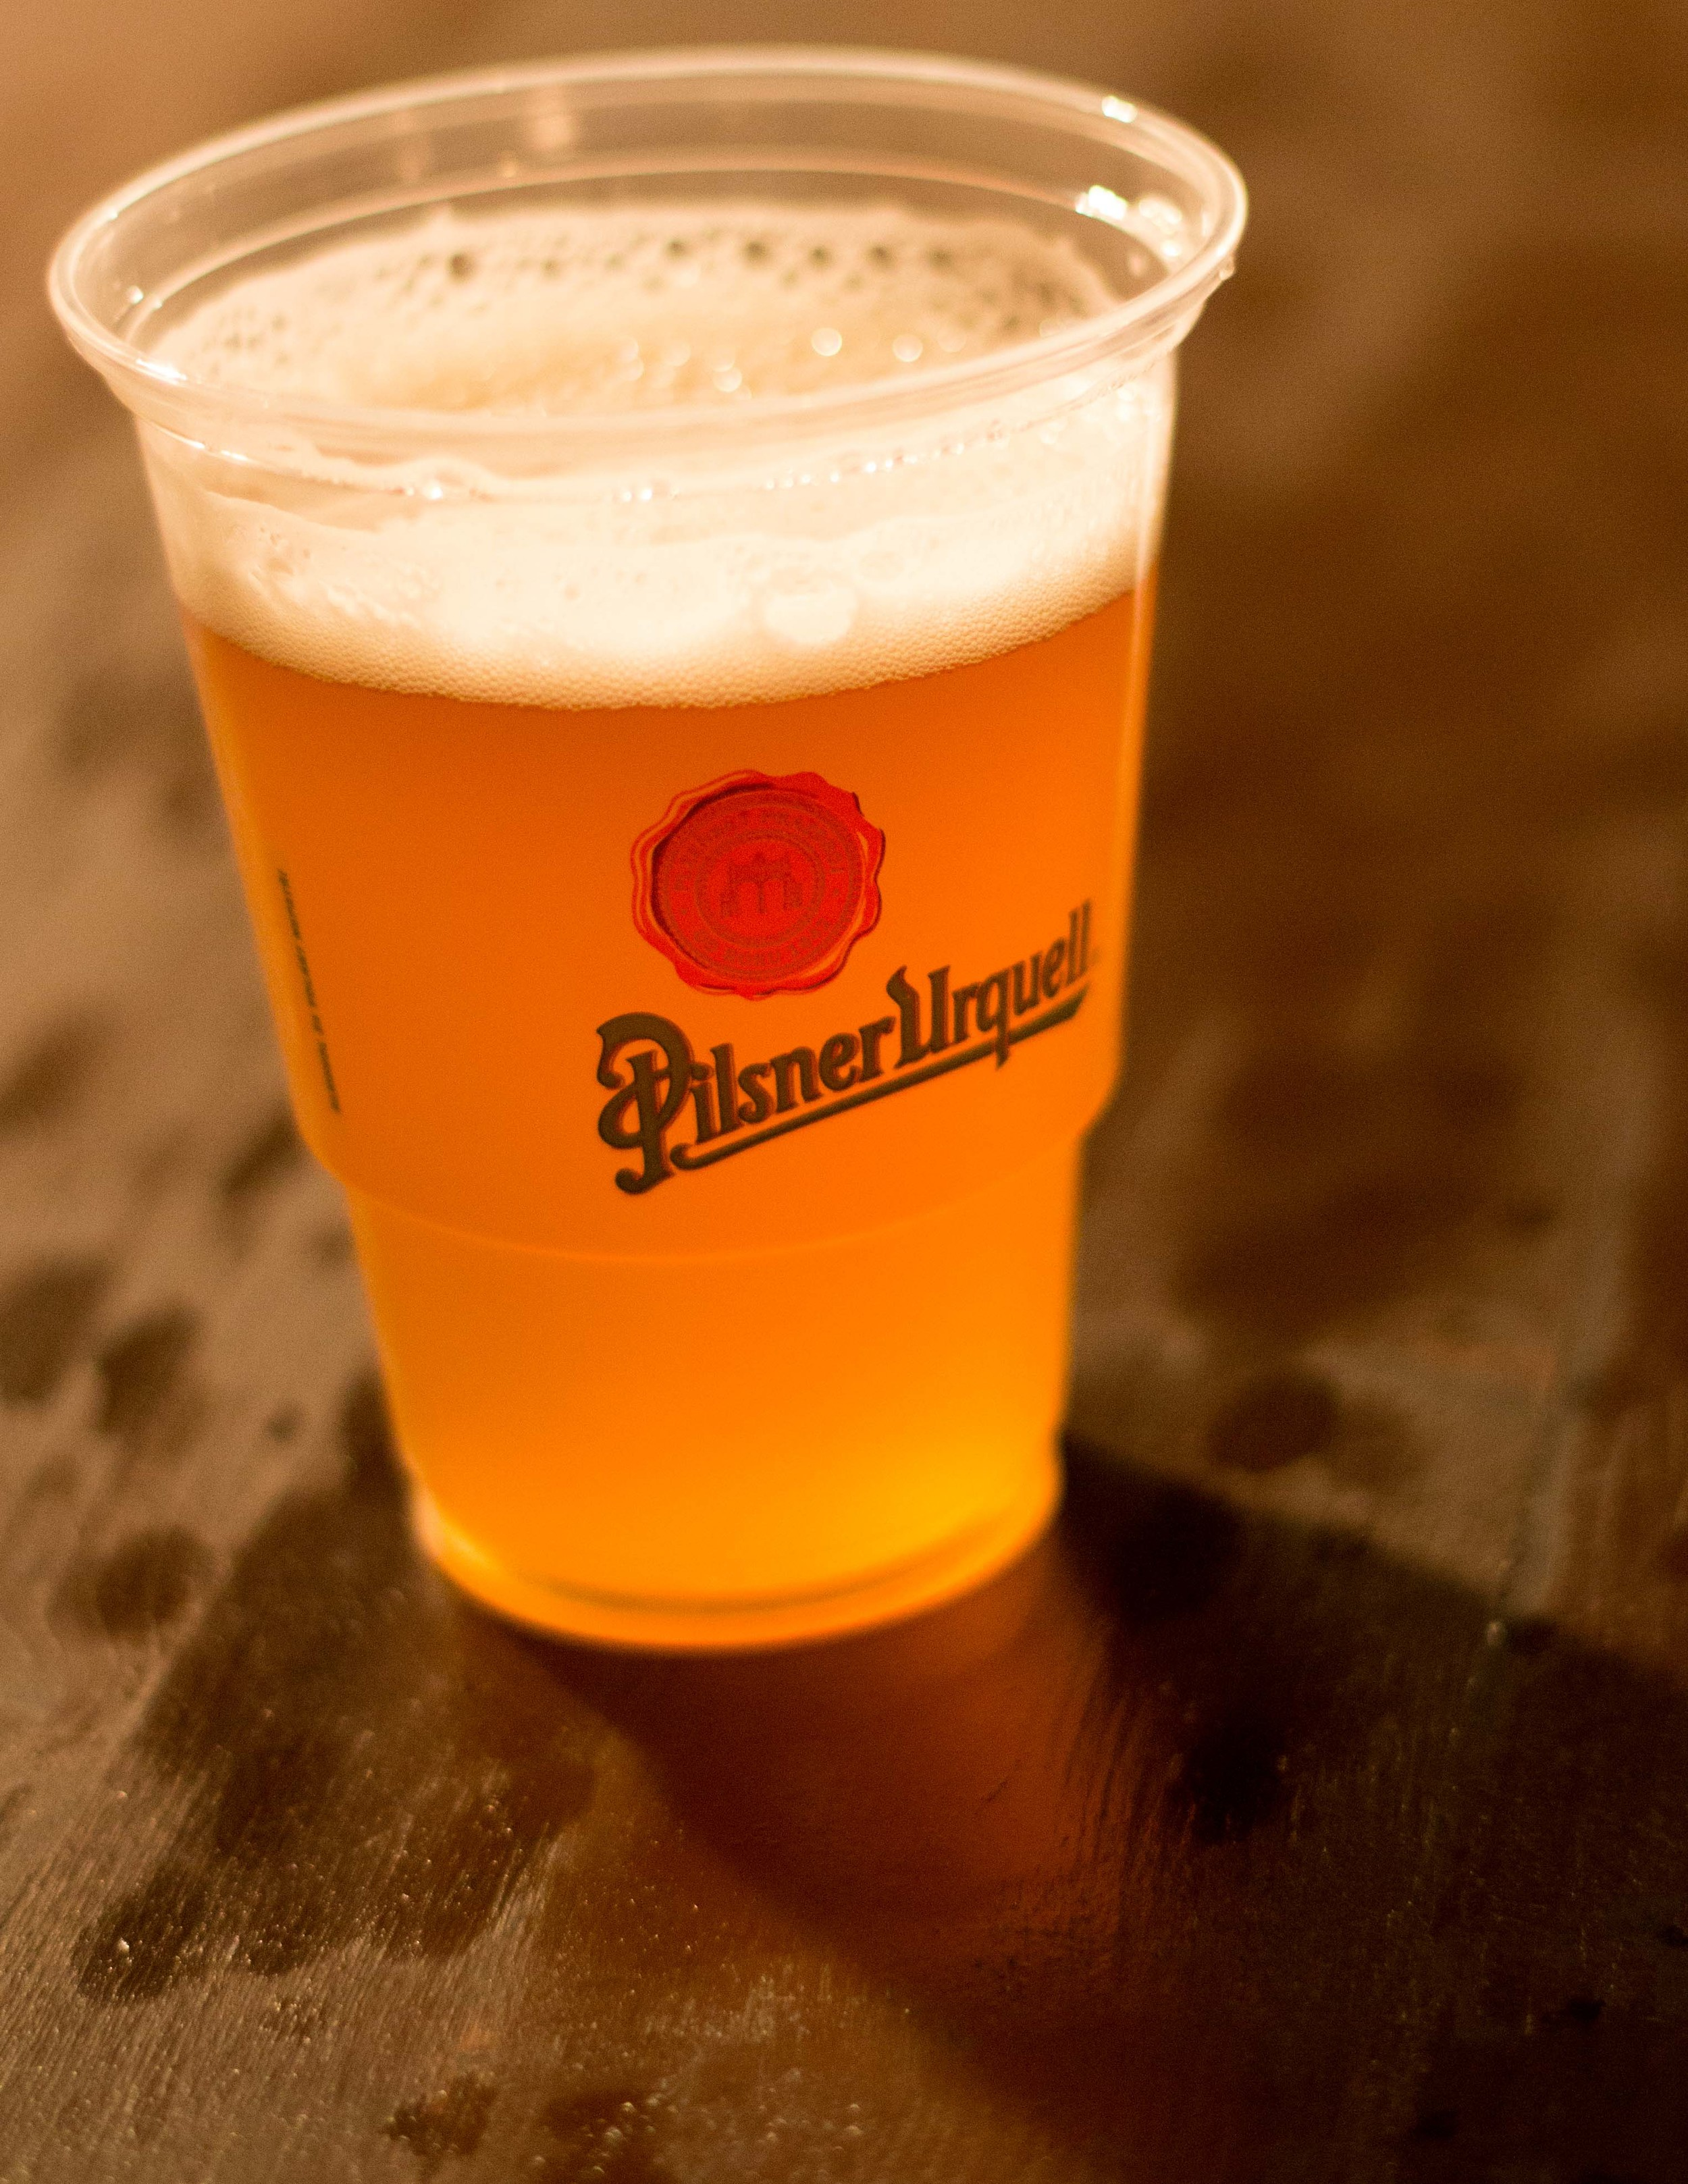 Our sample of open top fermented, unfiltered, unpasteurized Pilsner Urquell :)